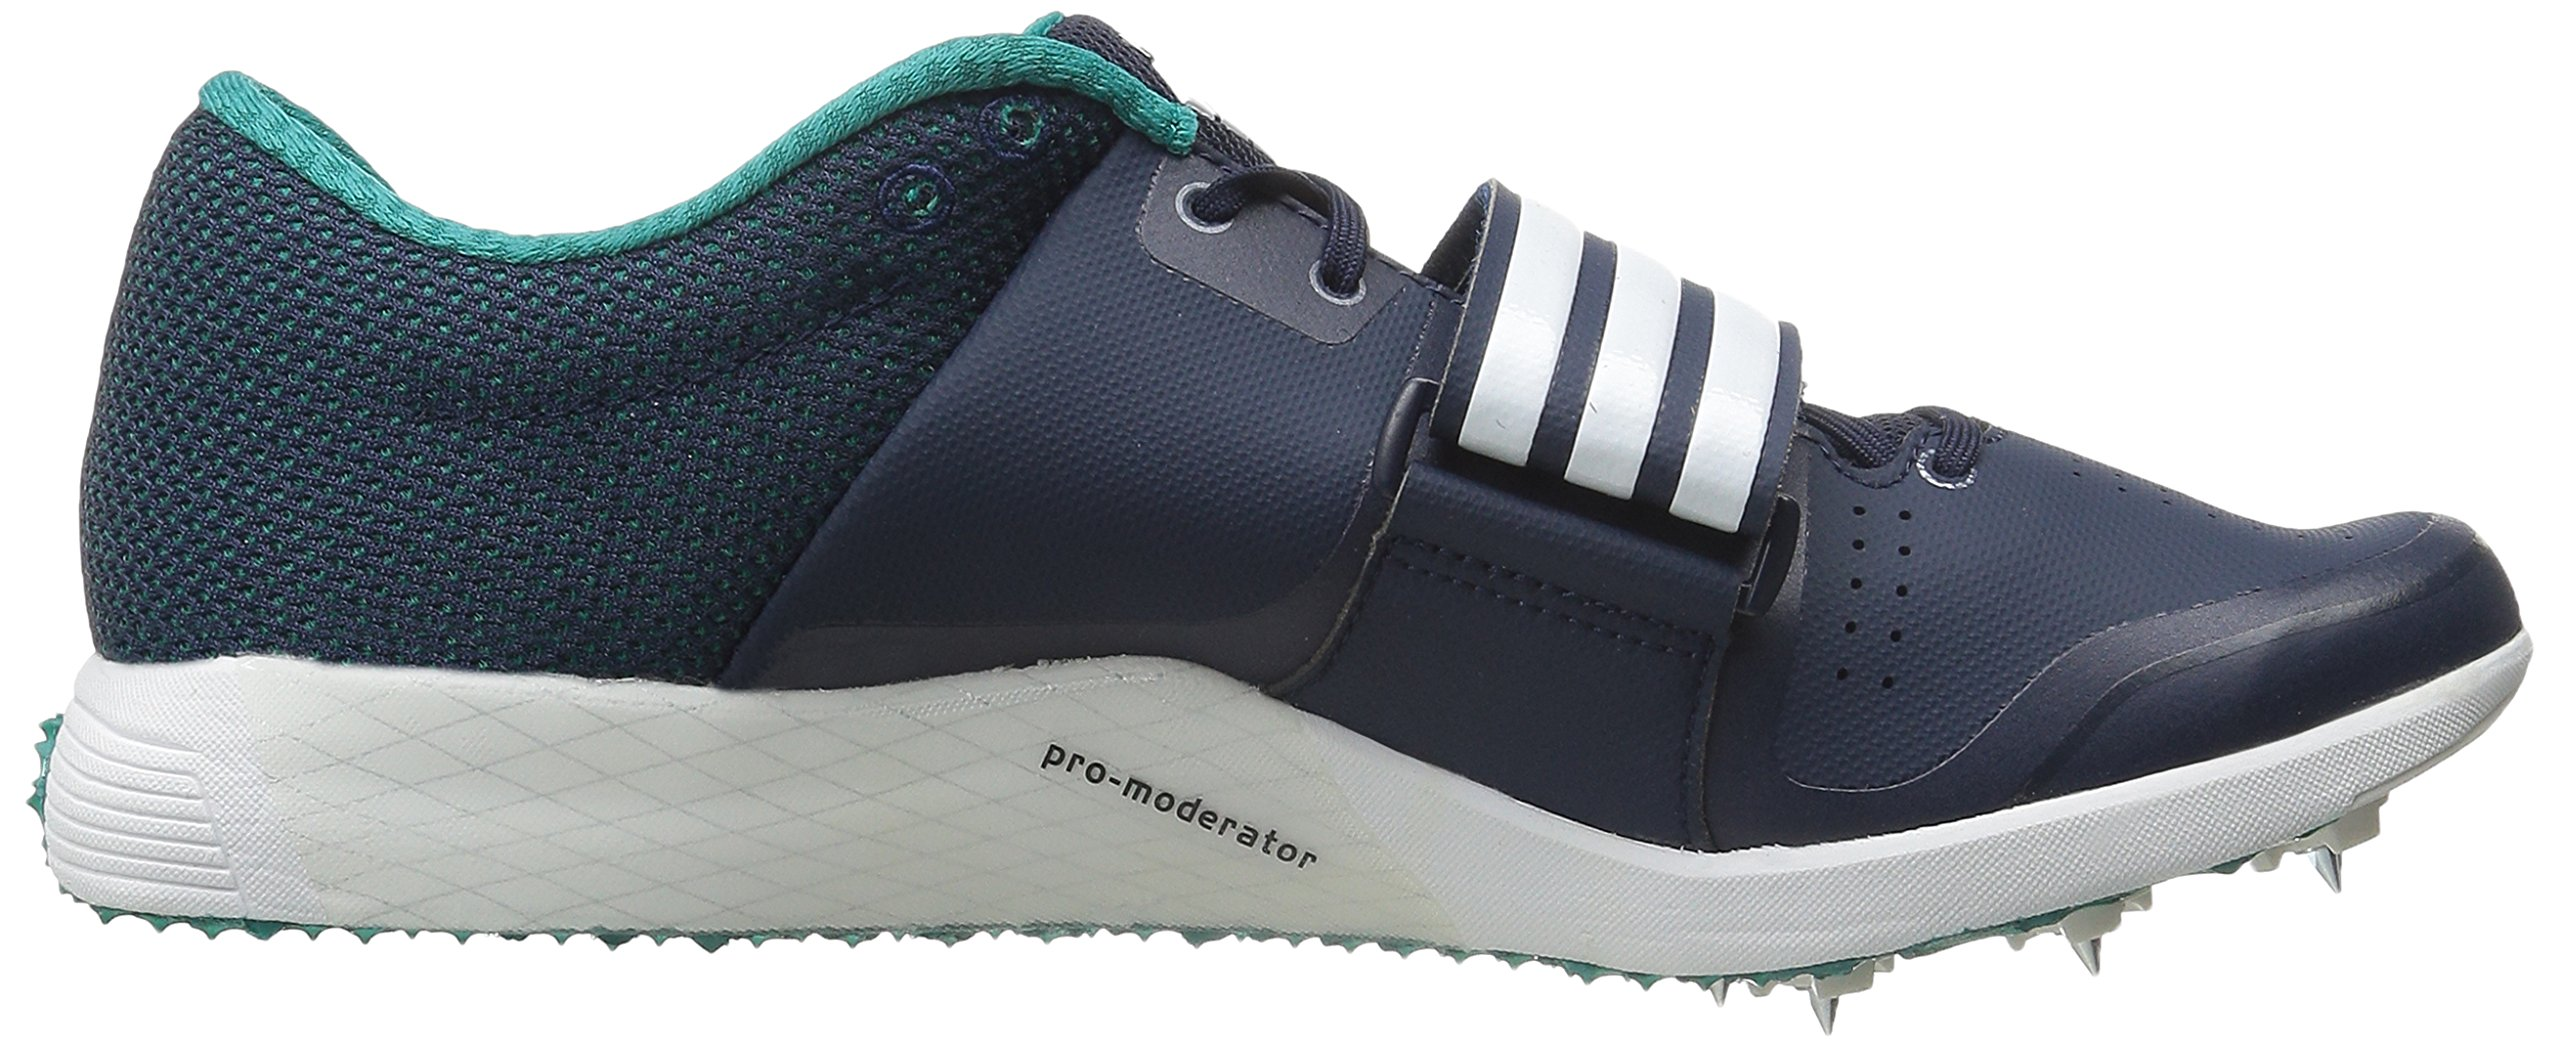 adidas Performance Women's Adizero TJ/PV Running Shoe with Spikes,Collegiate Navy/White/Green,14 M US by adidas (Image #7)